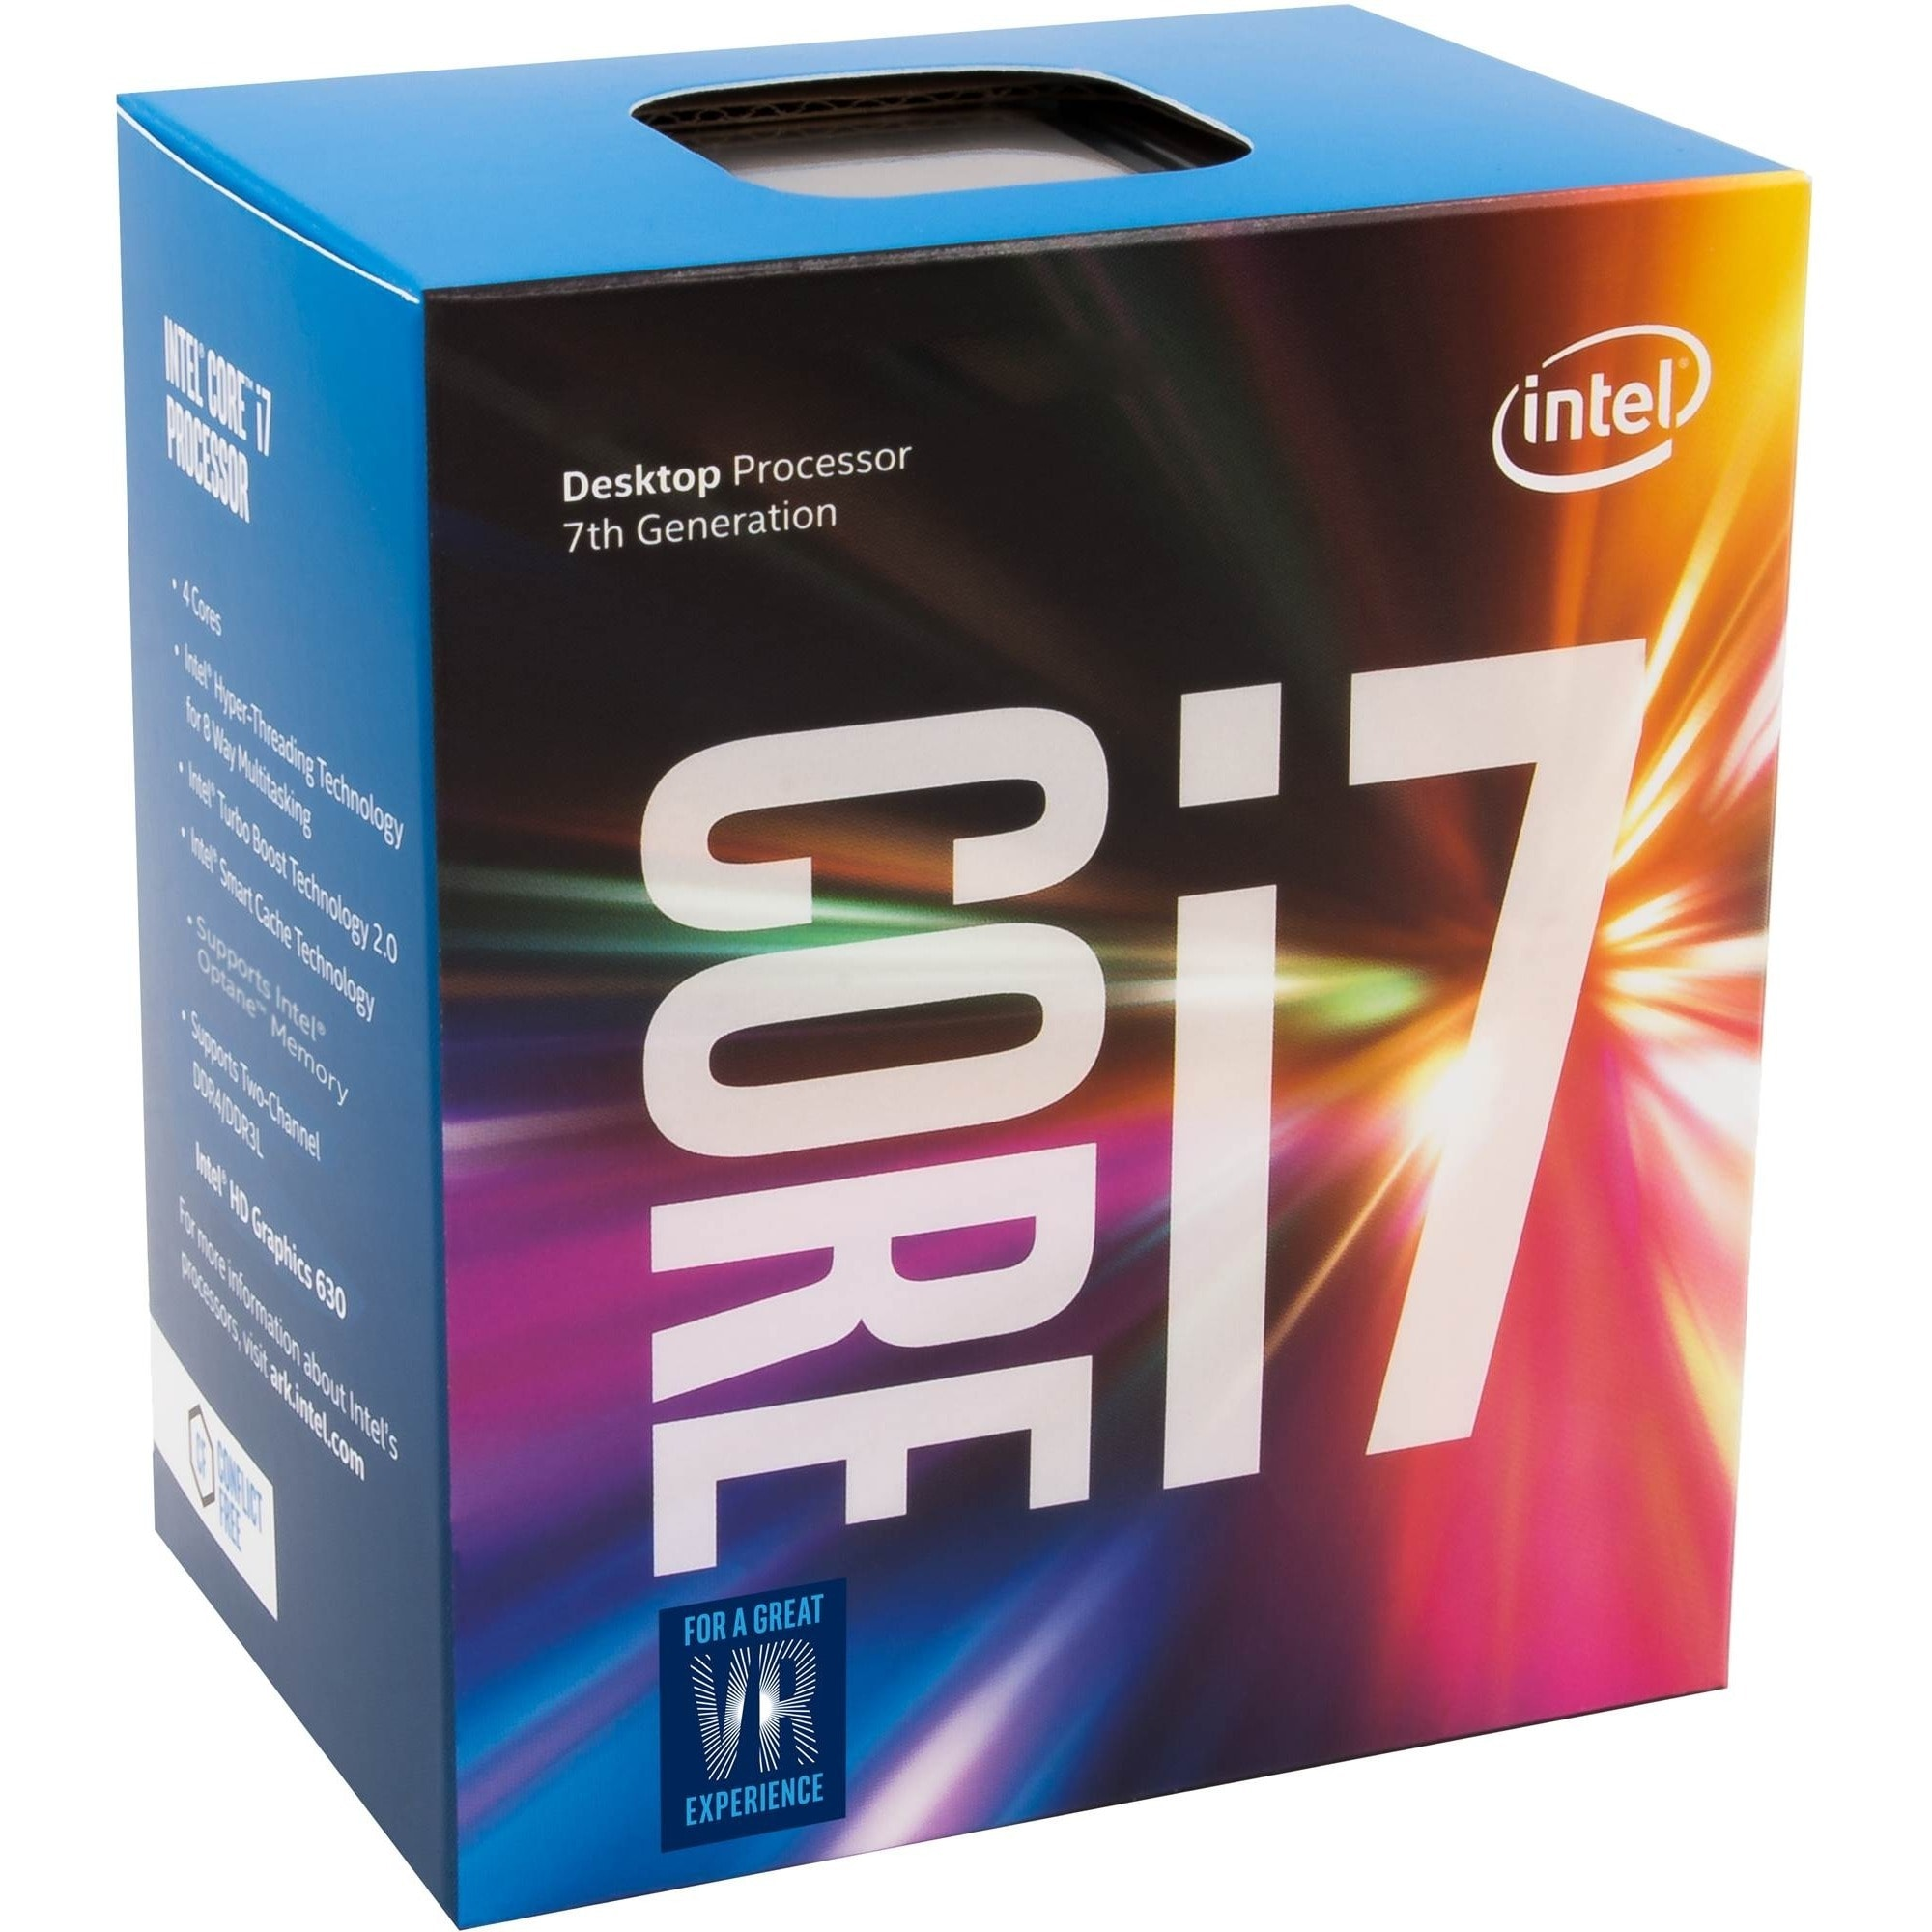 Intel Core i7 i7-7700 Quad-core (4 Core) 3.60 GHz Processor - Socket